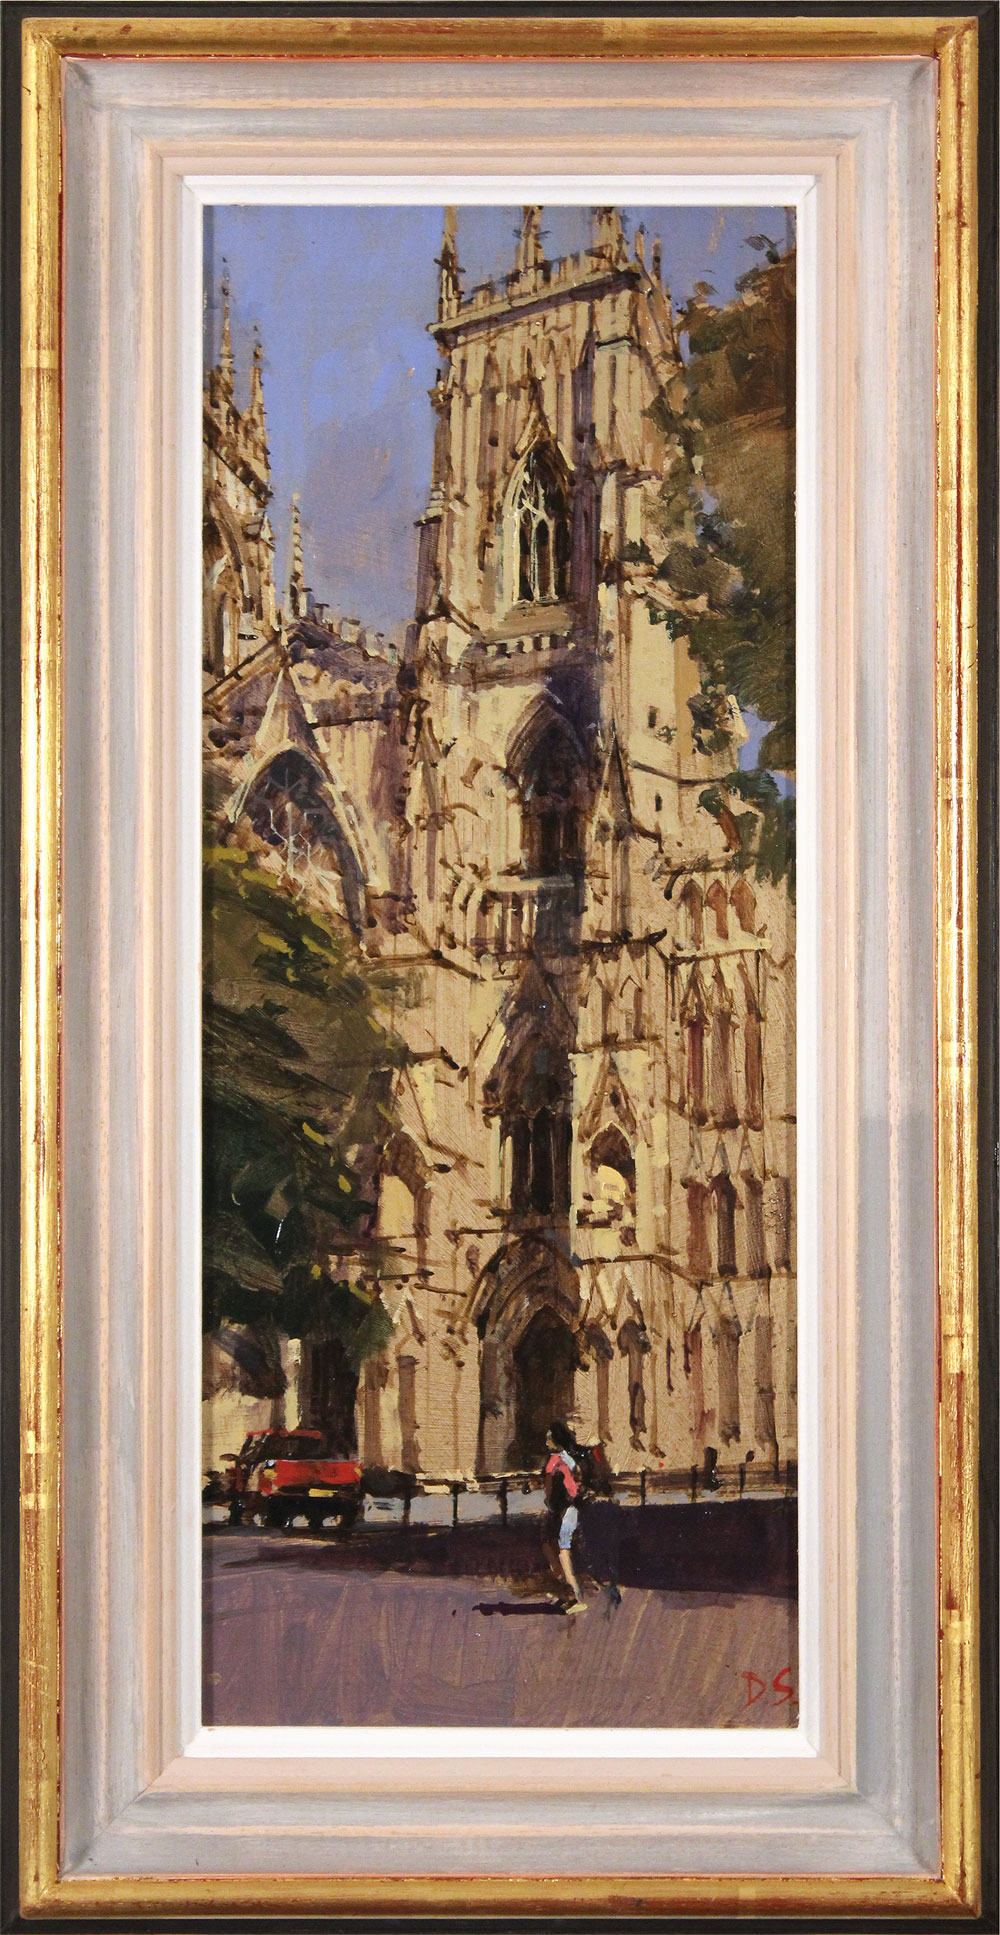 David Sawyer, RBA, Original oil painting on panel, The Red Truck, York Minster Click to enlarge